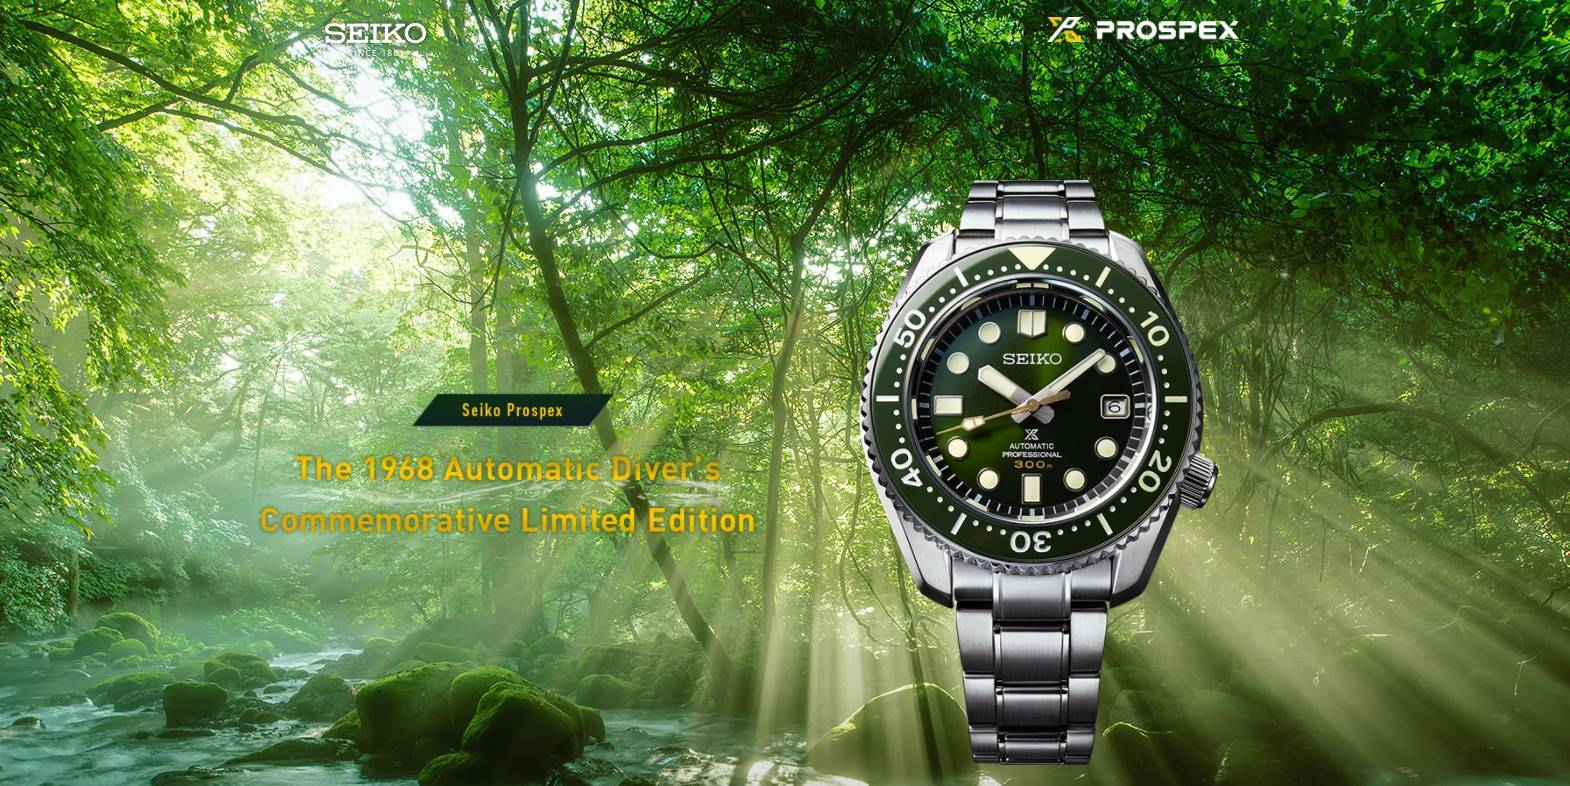 SEIKO_PROSPEX_THE_1968_AUTO_DIVERS_EL